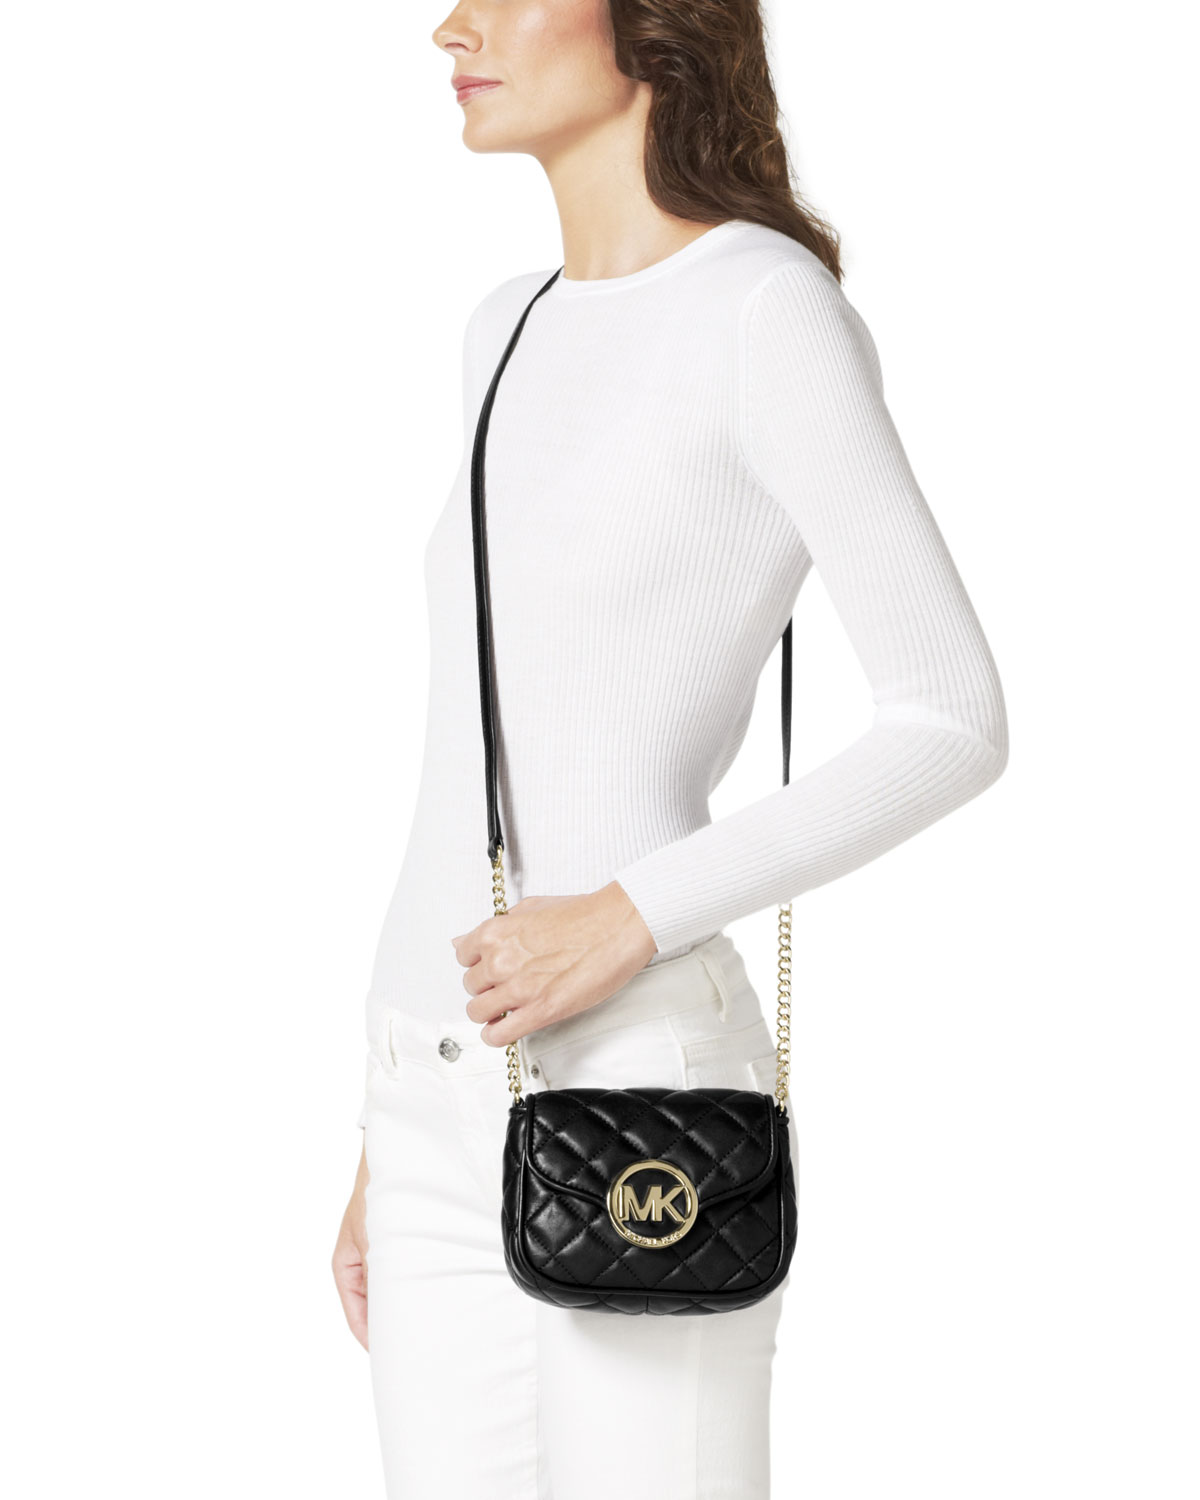 efbca6cd22a0 Gallery. Previously sold at: Neiman Marcus · Women's Michael By Michael  Kors Fulton Women's Michael Kors Quilted Bag